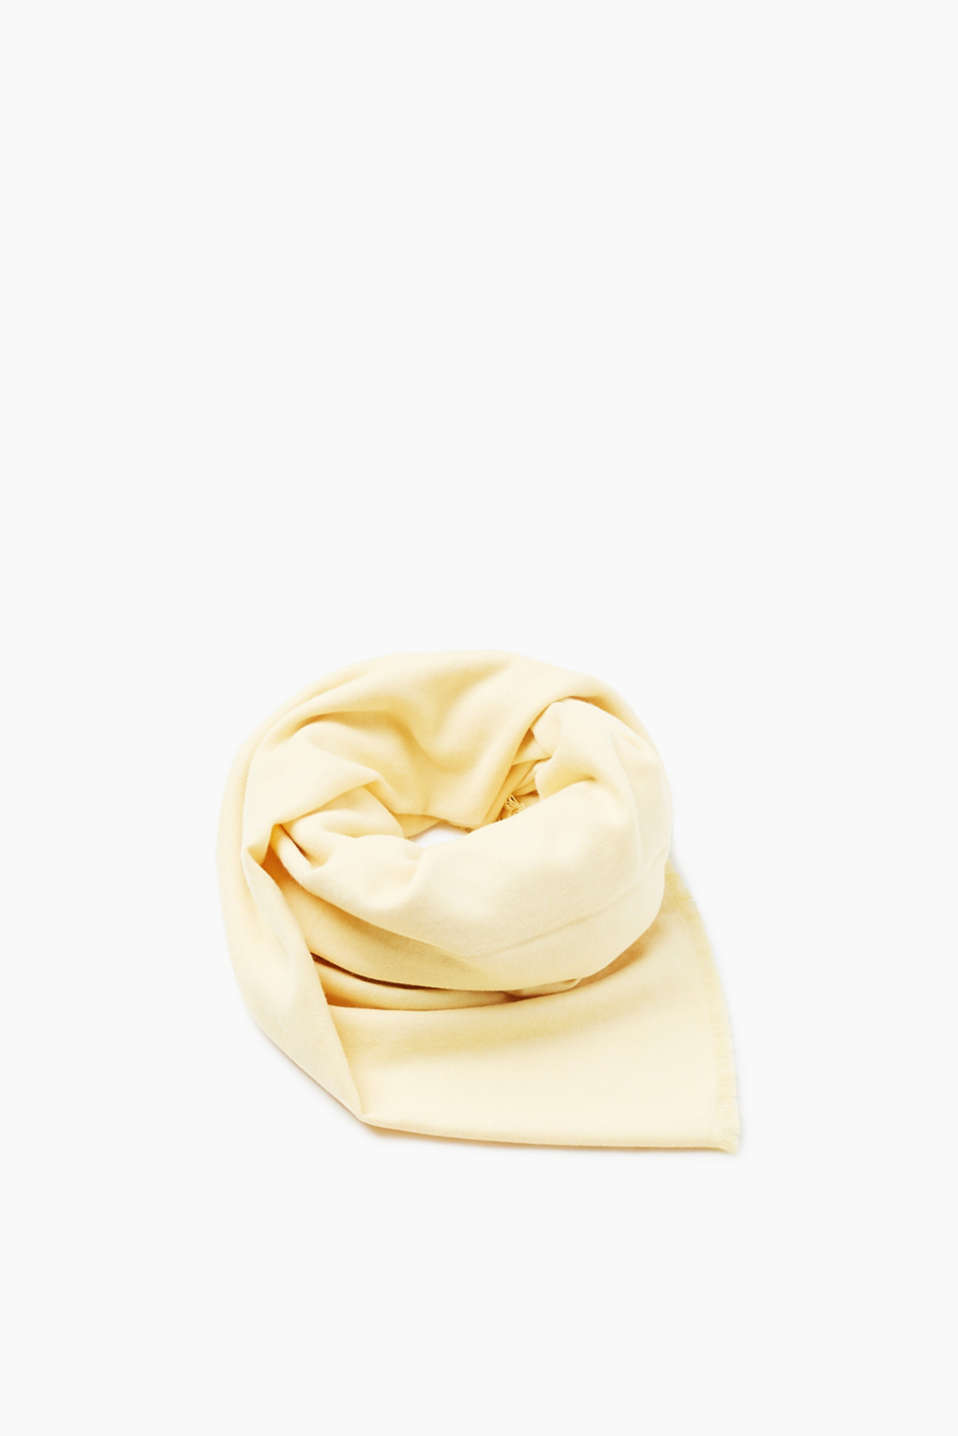 This fine, flowing scarf comes in a cosy and comfortable material mix and can be worn with all kinds of outfits